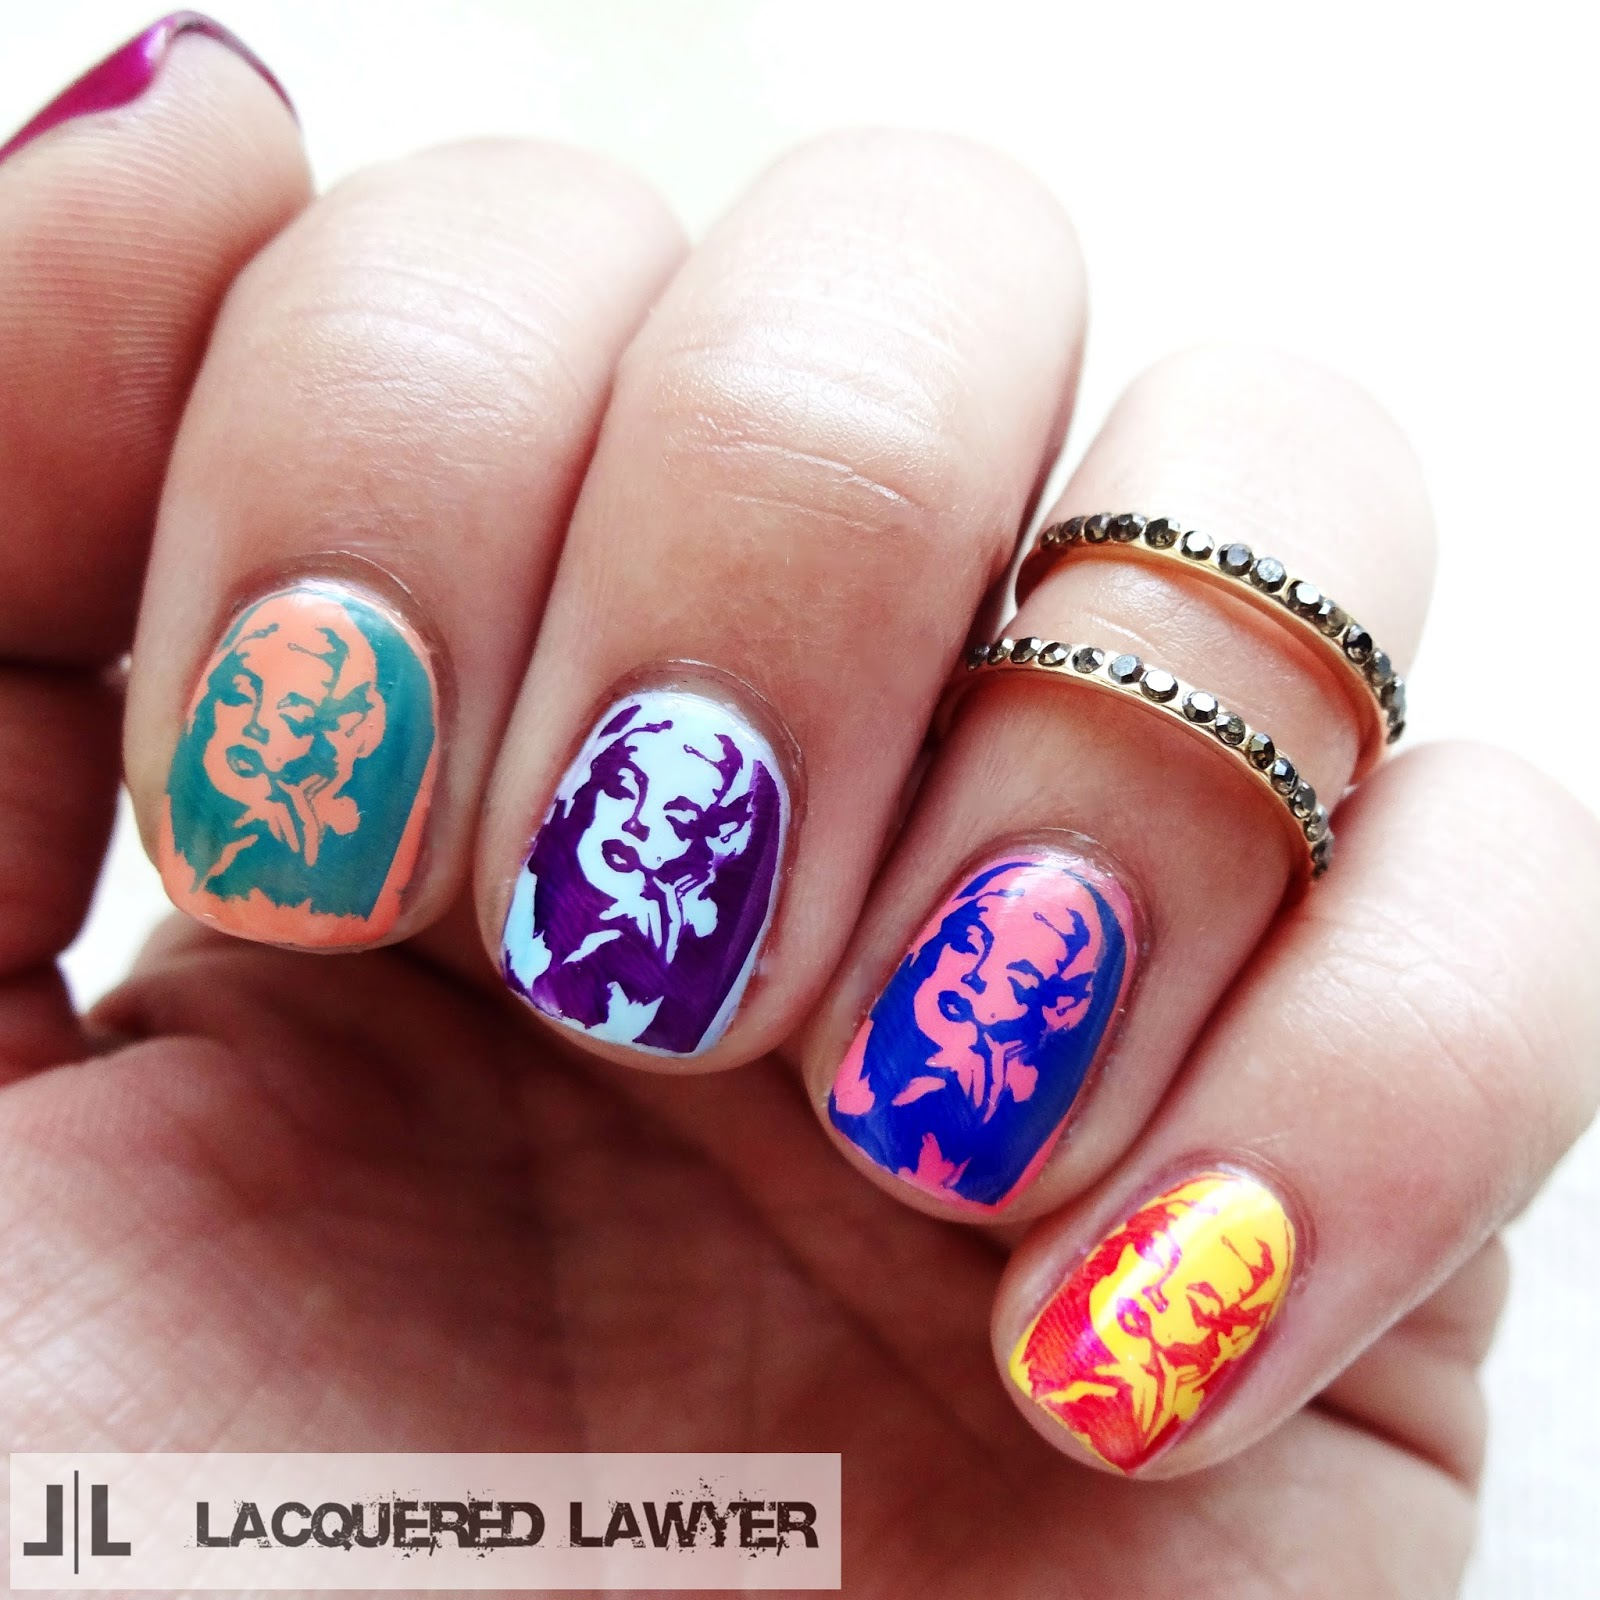 Lacquered Lawyer | Nail Art Blog: Just Marilyn